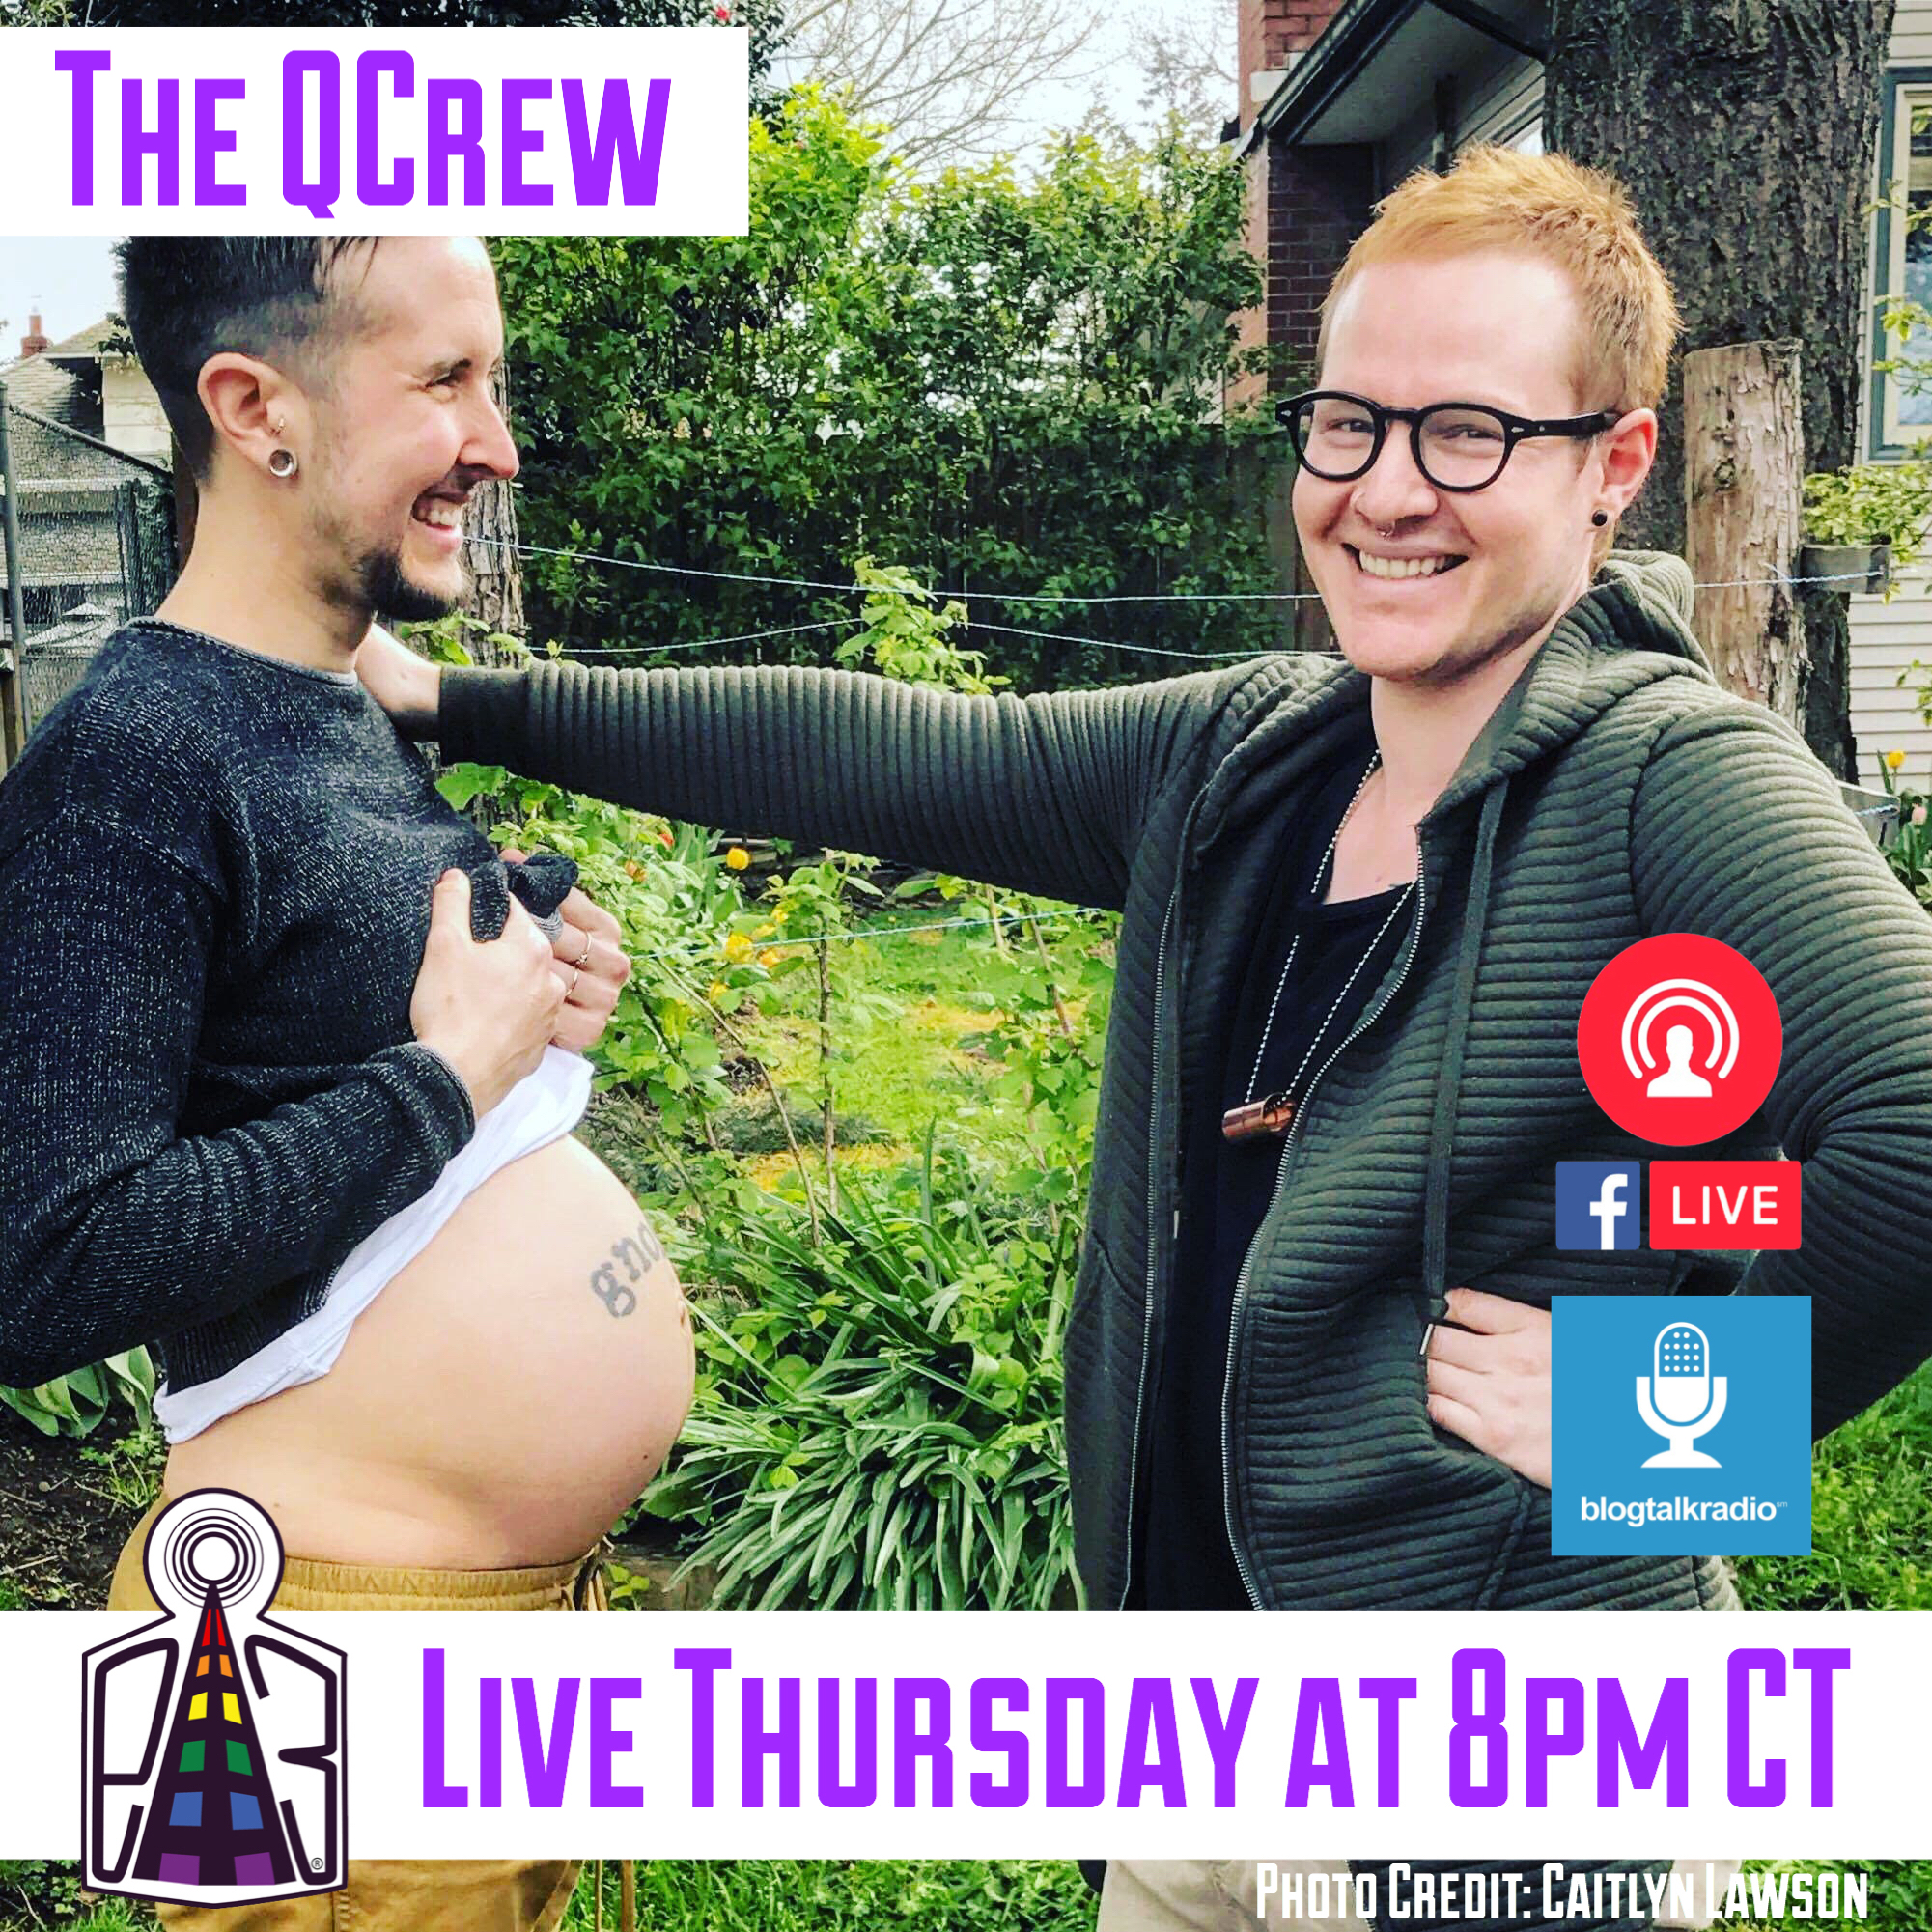 Trans & Pregnant: It's Possible. Trystan & Biff join Anna DeShawn & the QCrew